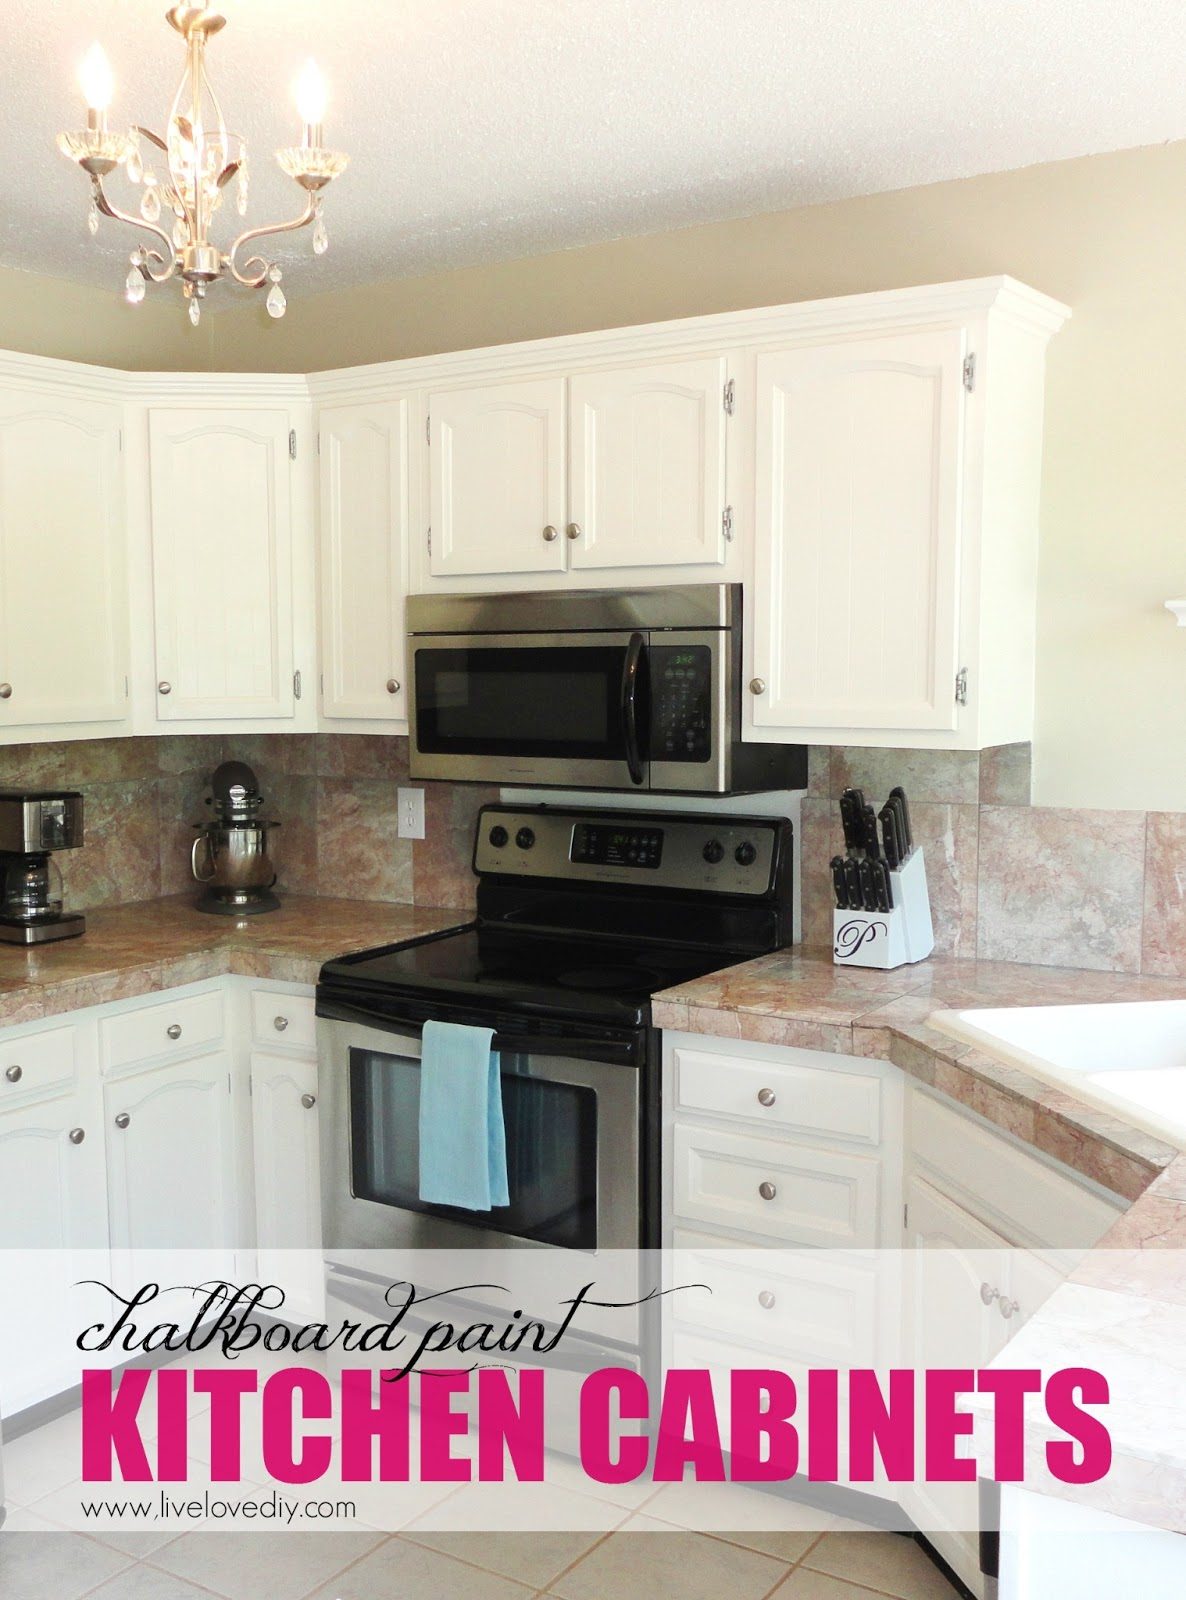 LiveLoveDIY The Chalkboard Paint Kitchen Cabinet Makeover - Best paint to use on kitchen cabinets